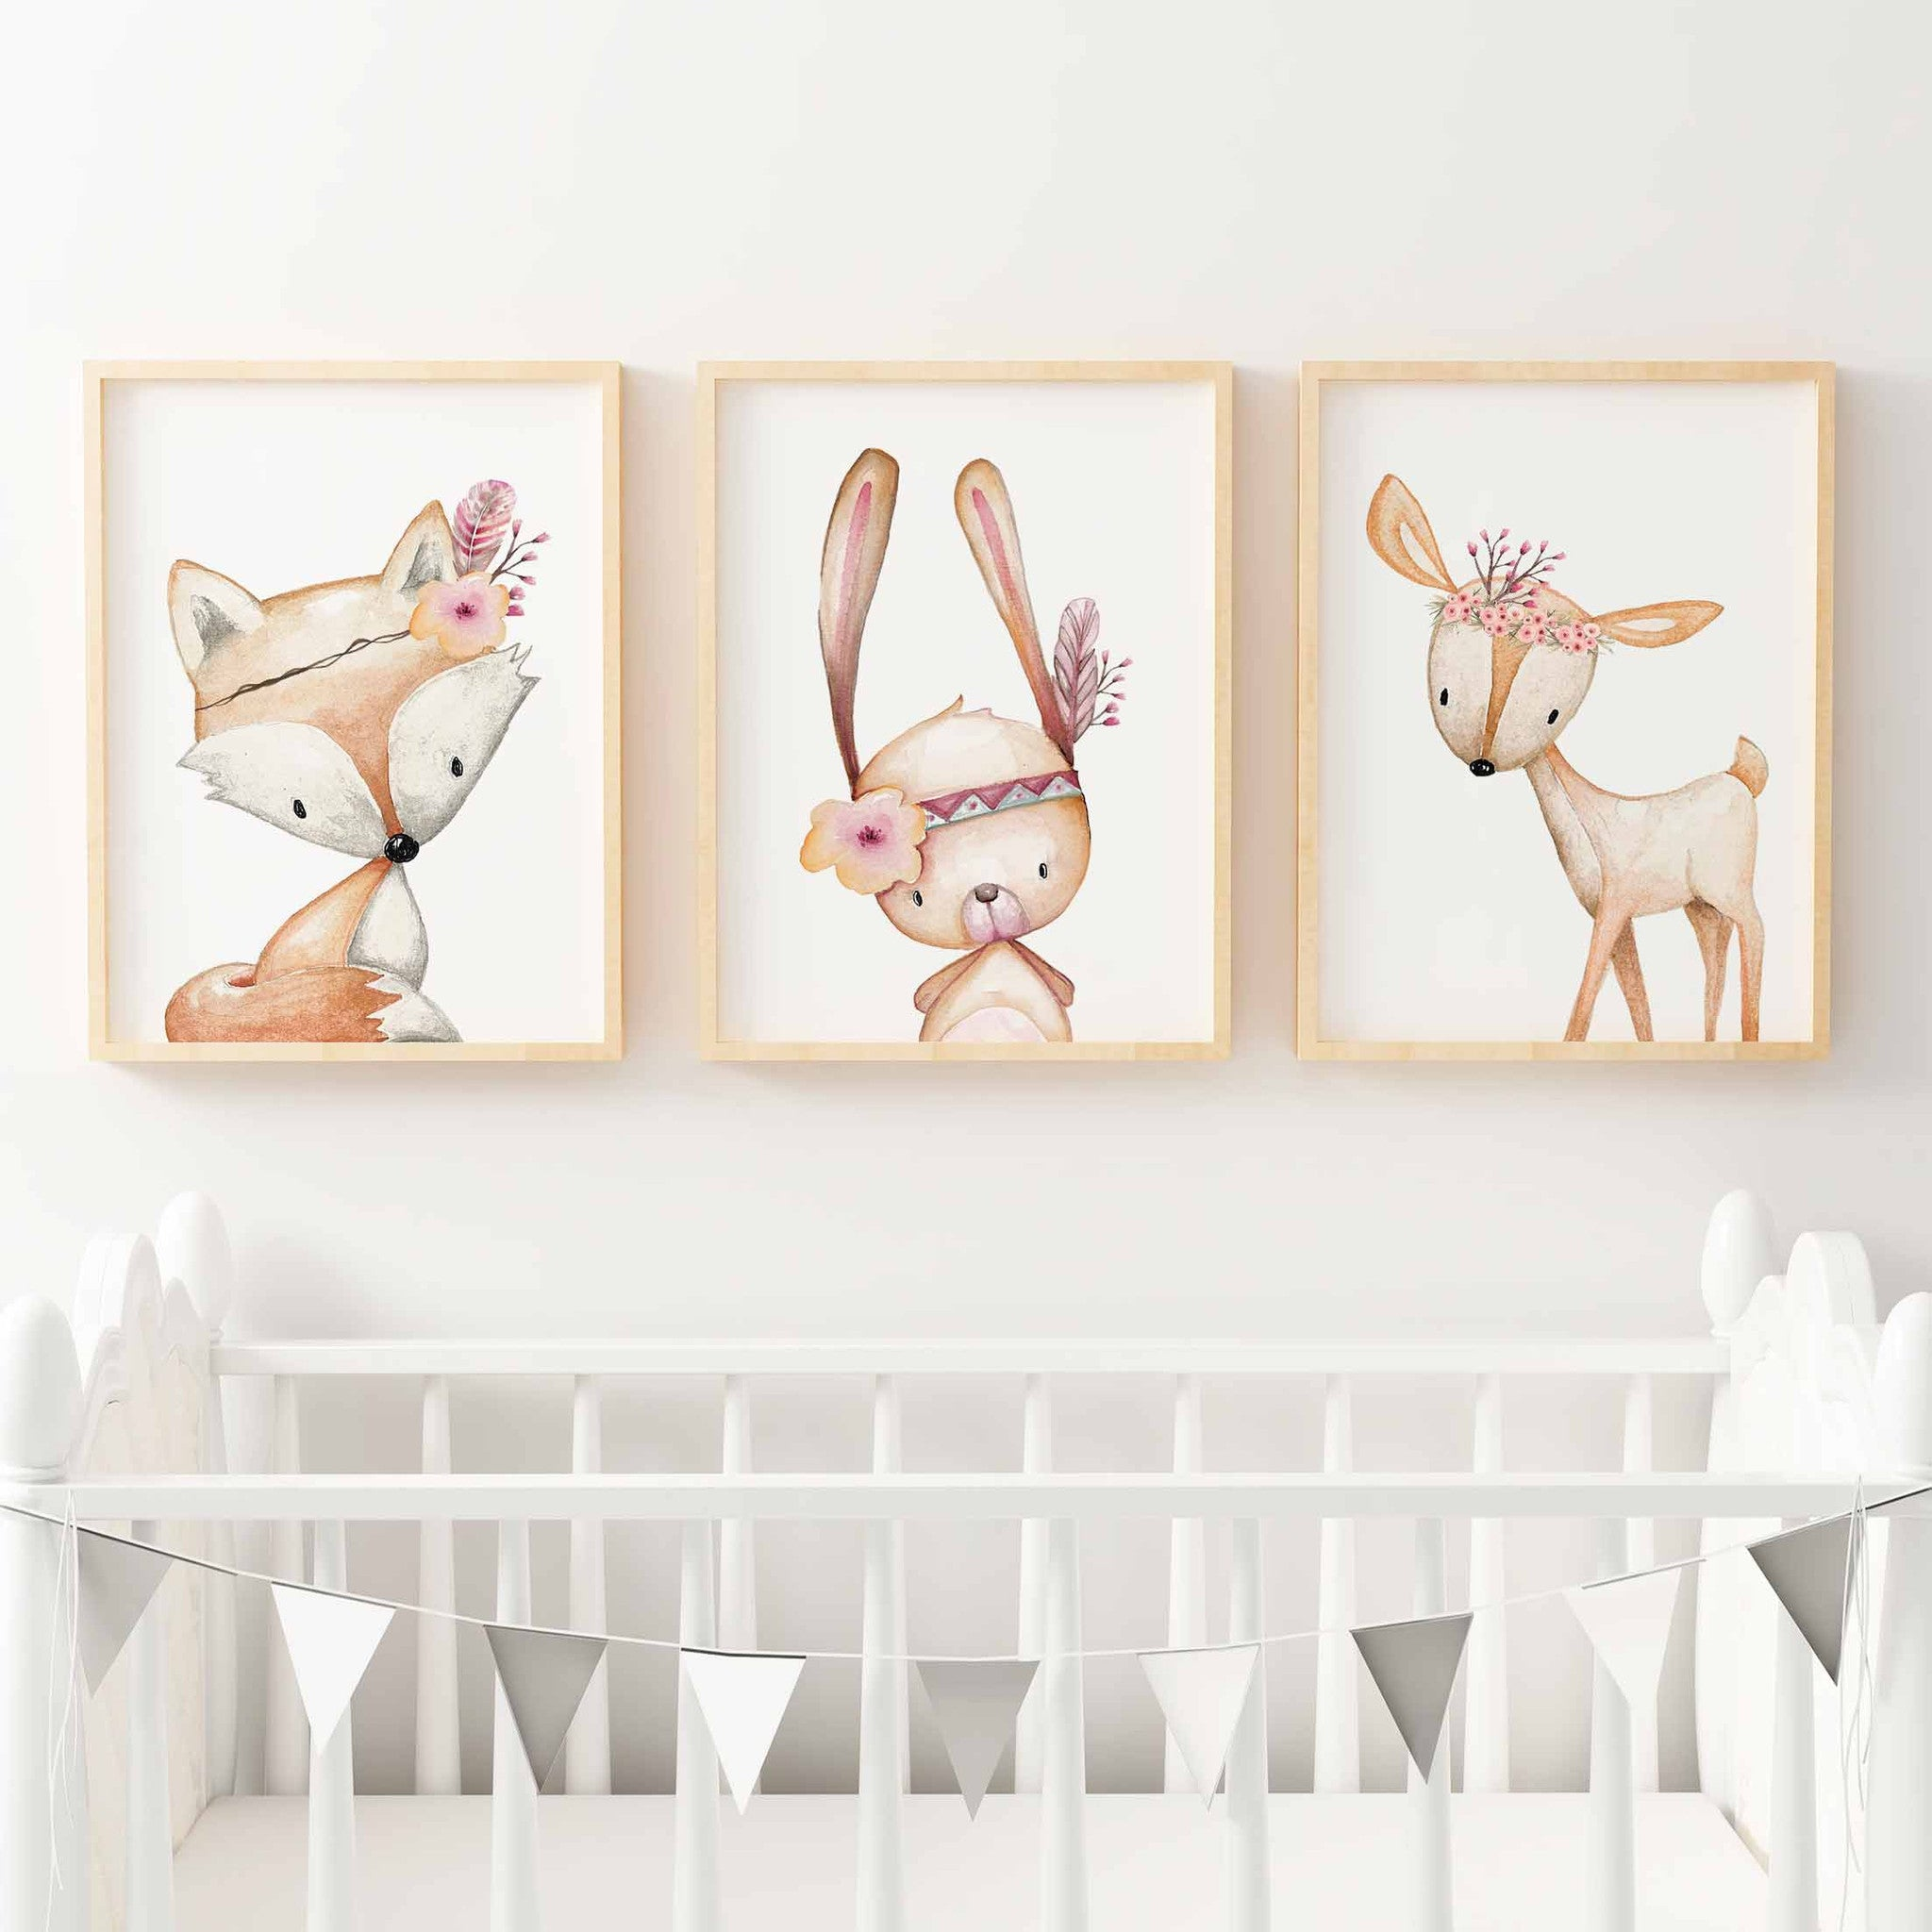 High Quality Baby, Girls Floral Woodland Nursery Or Bedroom Wall Art Decor Print Set   Bunny, ...